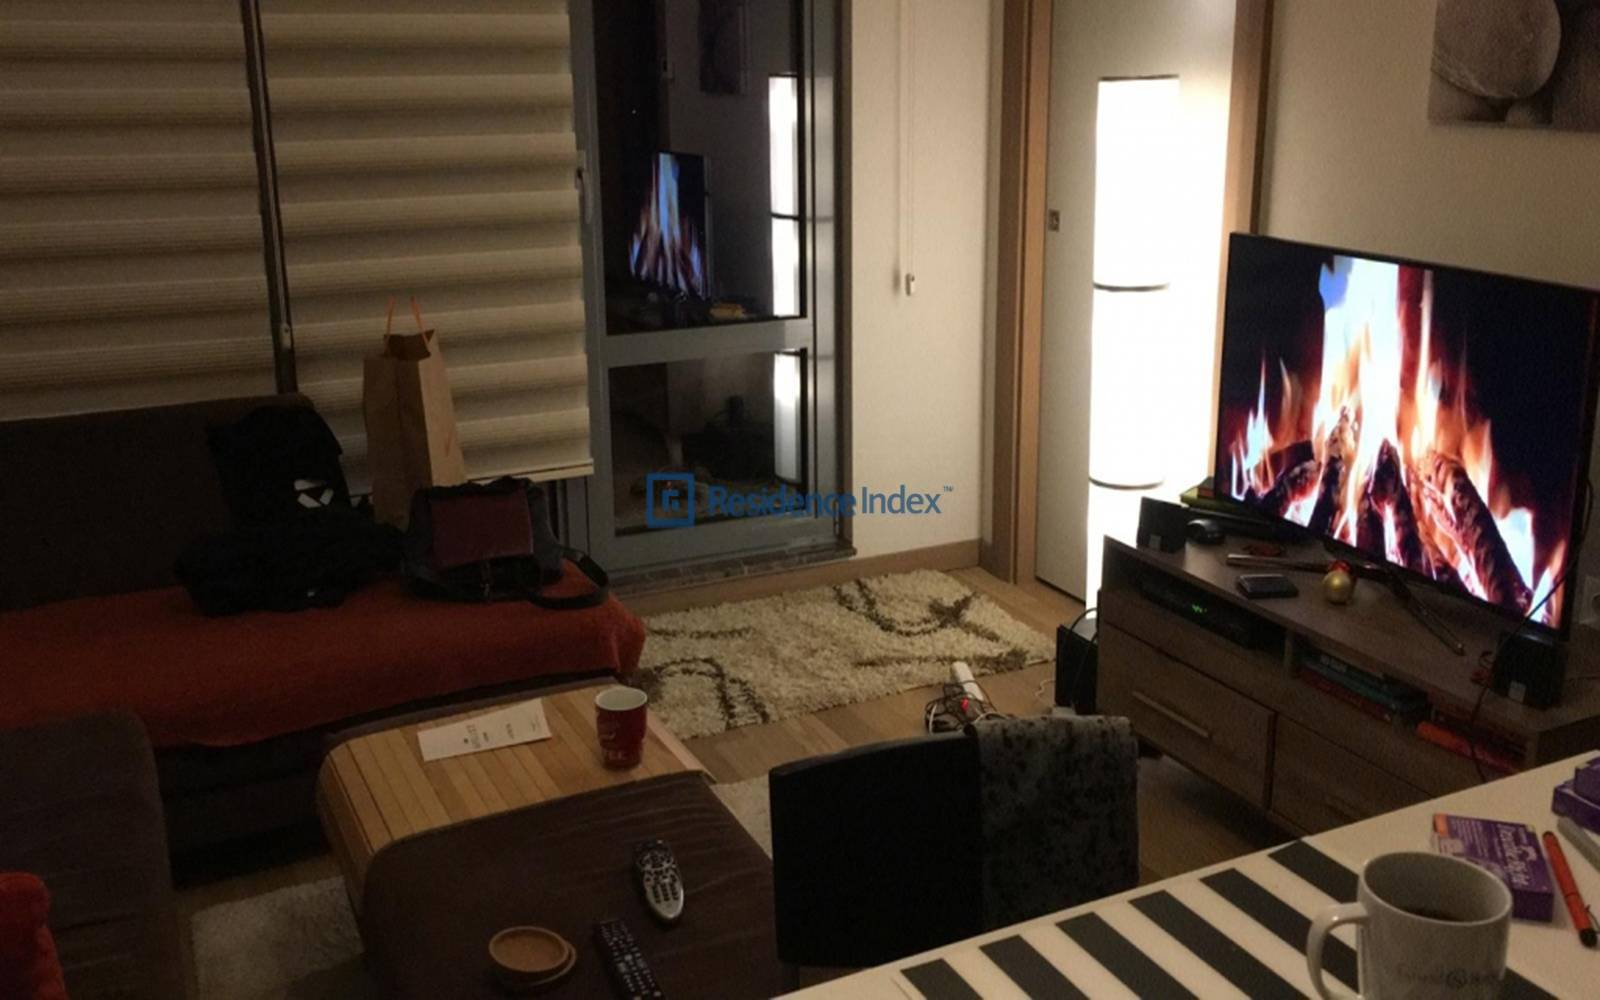 1453 Maslak - 1 + 1 Apartment For Rent